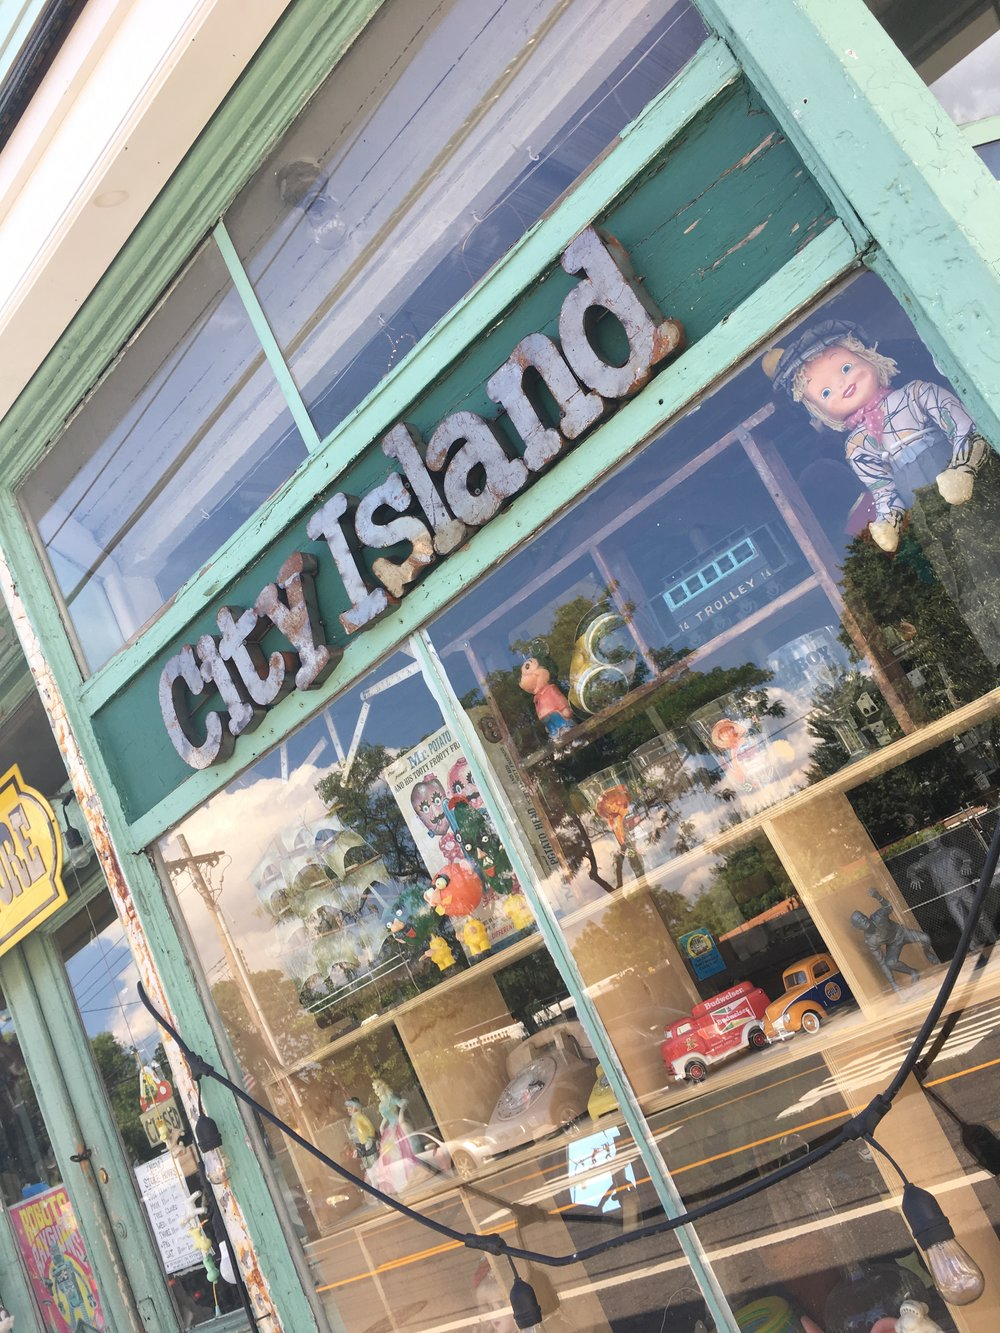 Explore the many antique and artisanal shops on the island